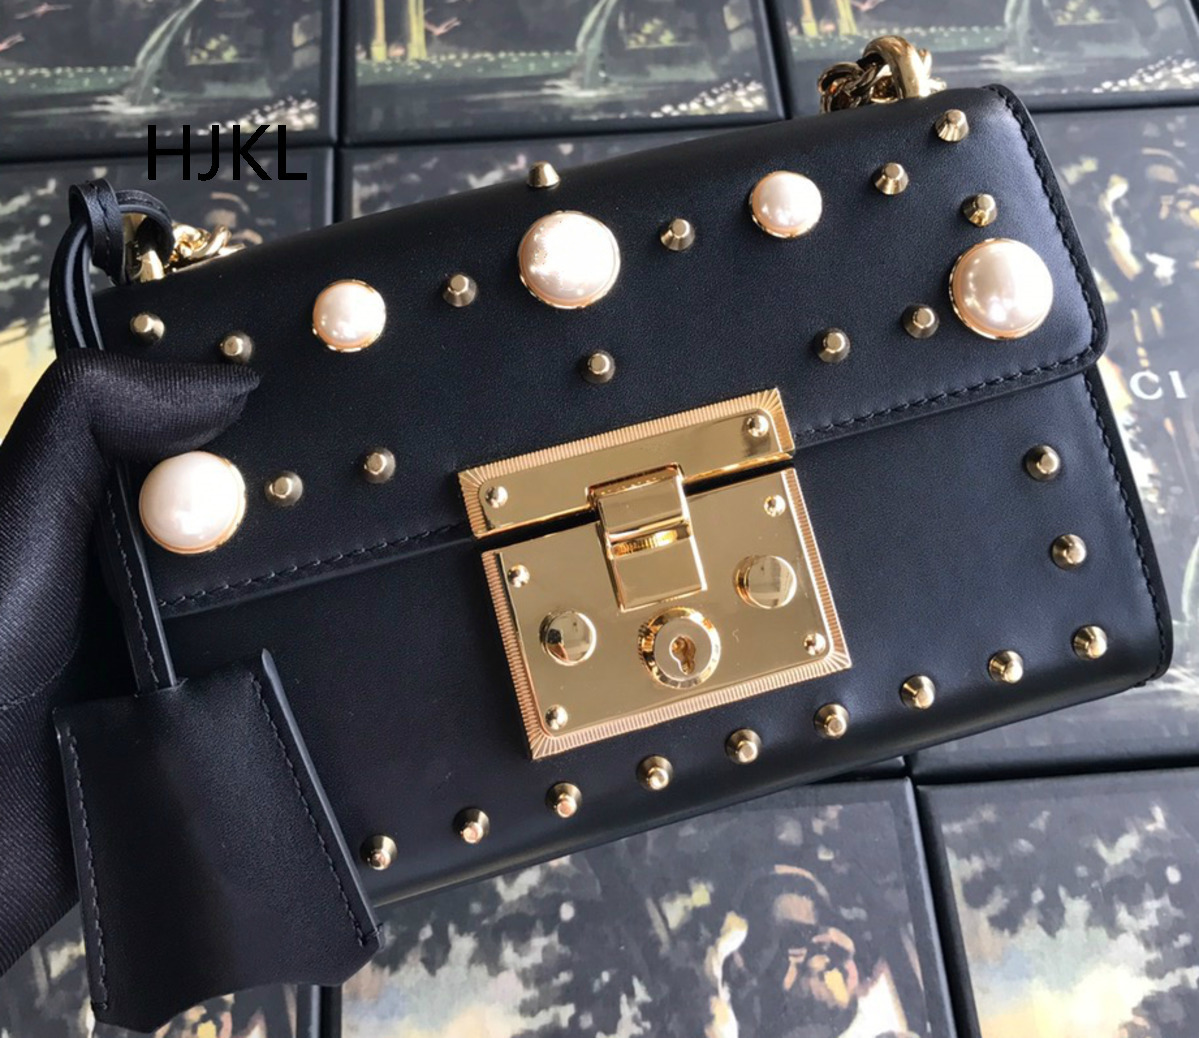 2019NEW Custom Clutch Luxury Handbags Women Bags Designer Real Leather Cowhide TOP Fashion Brand Small Purse Ladies Shoulder Bag-in Shoulder Bags from Luggage & Bags    1